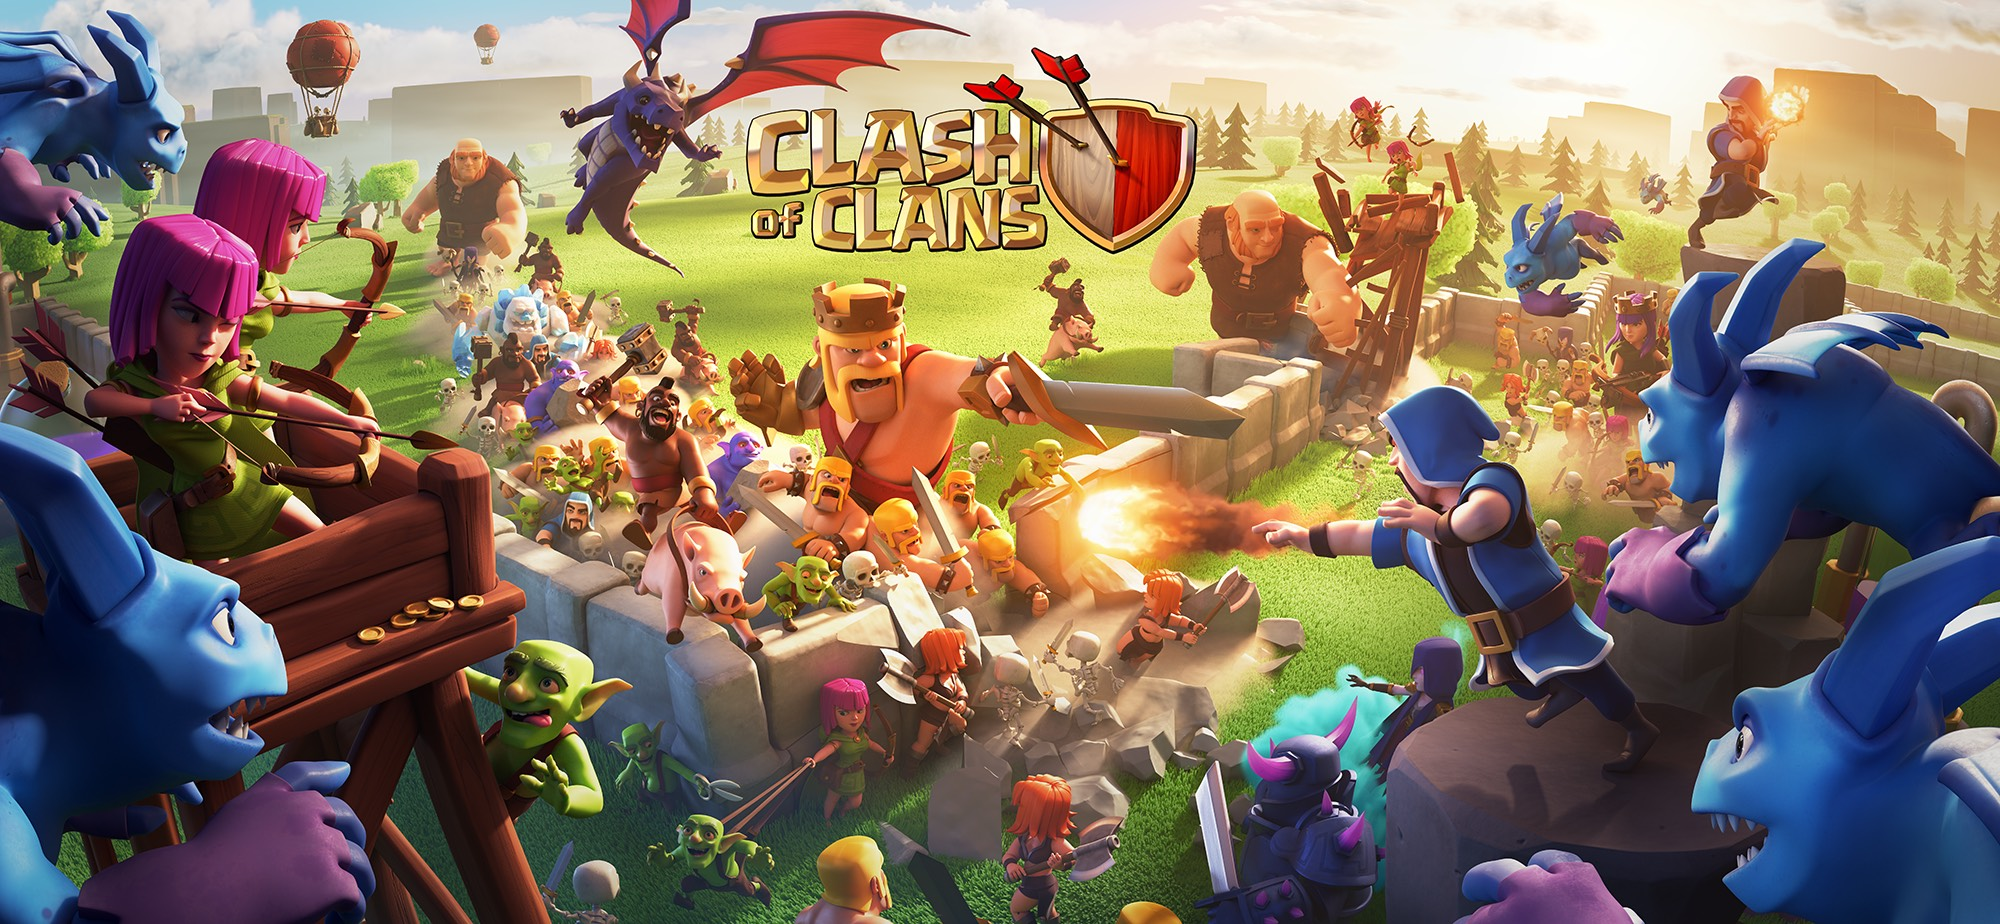 Clash of Clans Wall banner